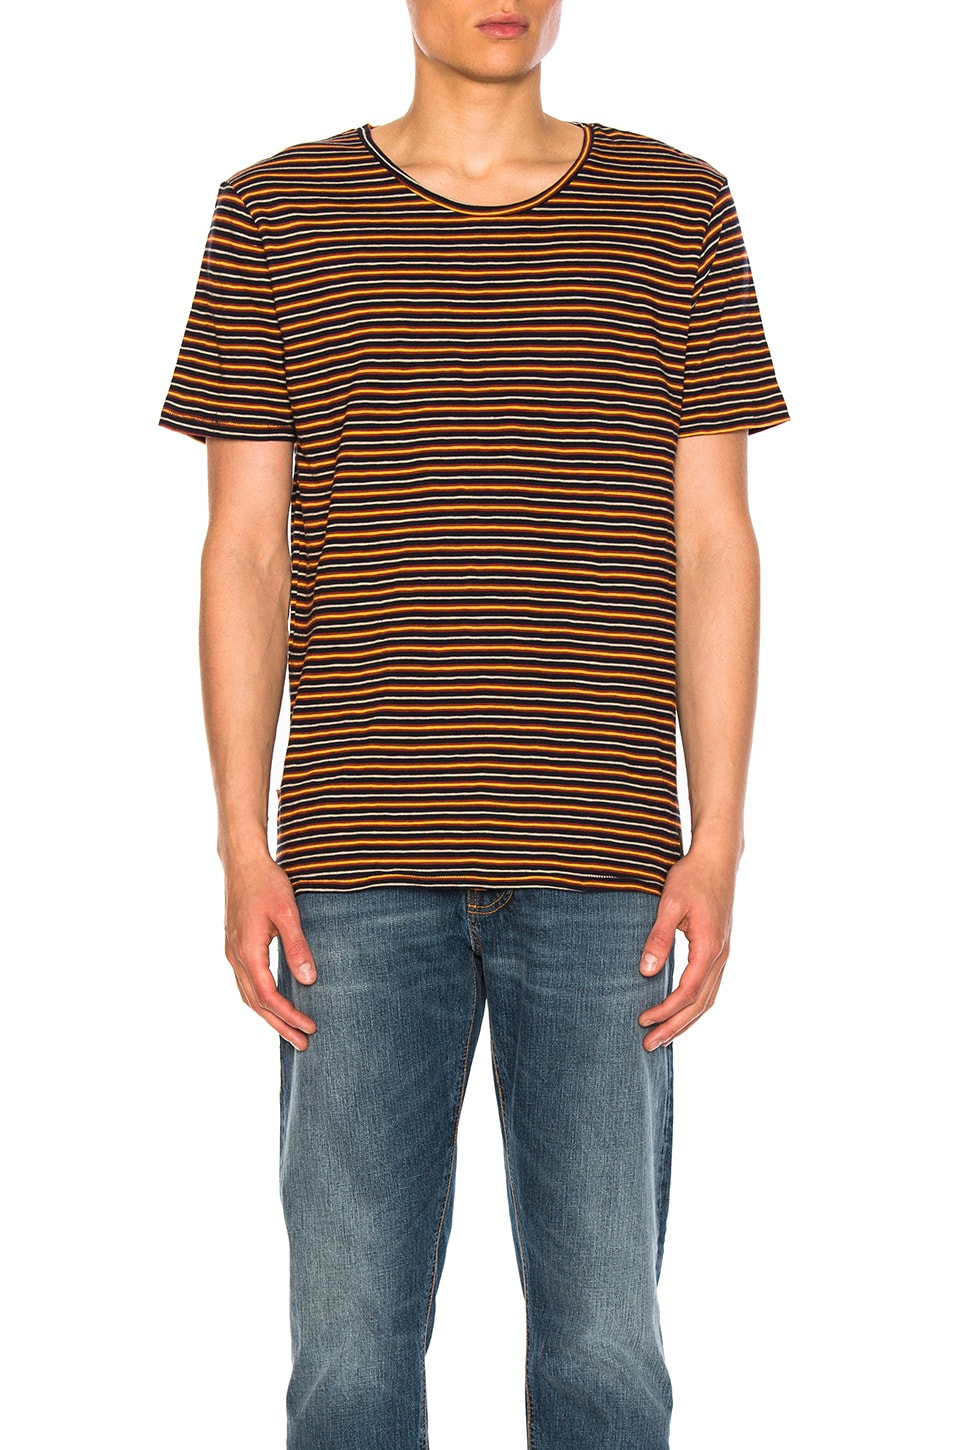 Ove Plural Stripe Tee by Nudie Jeans